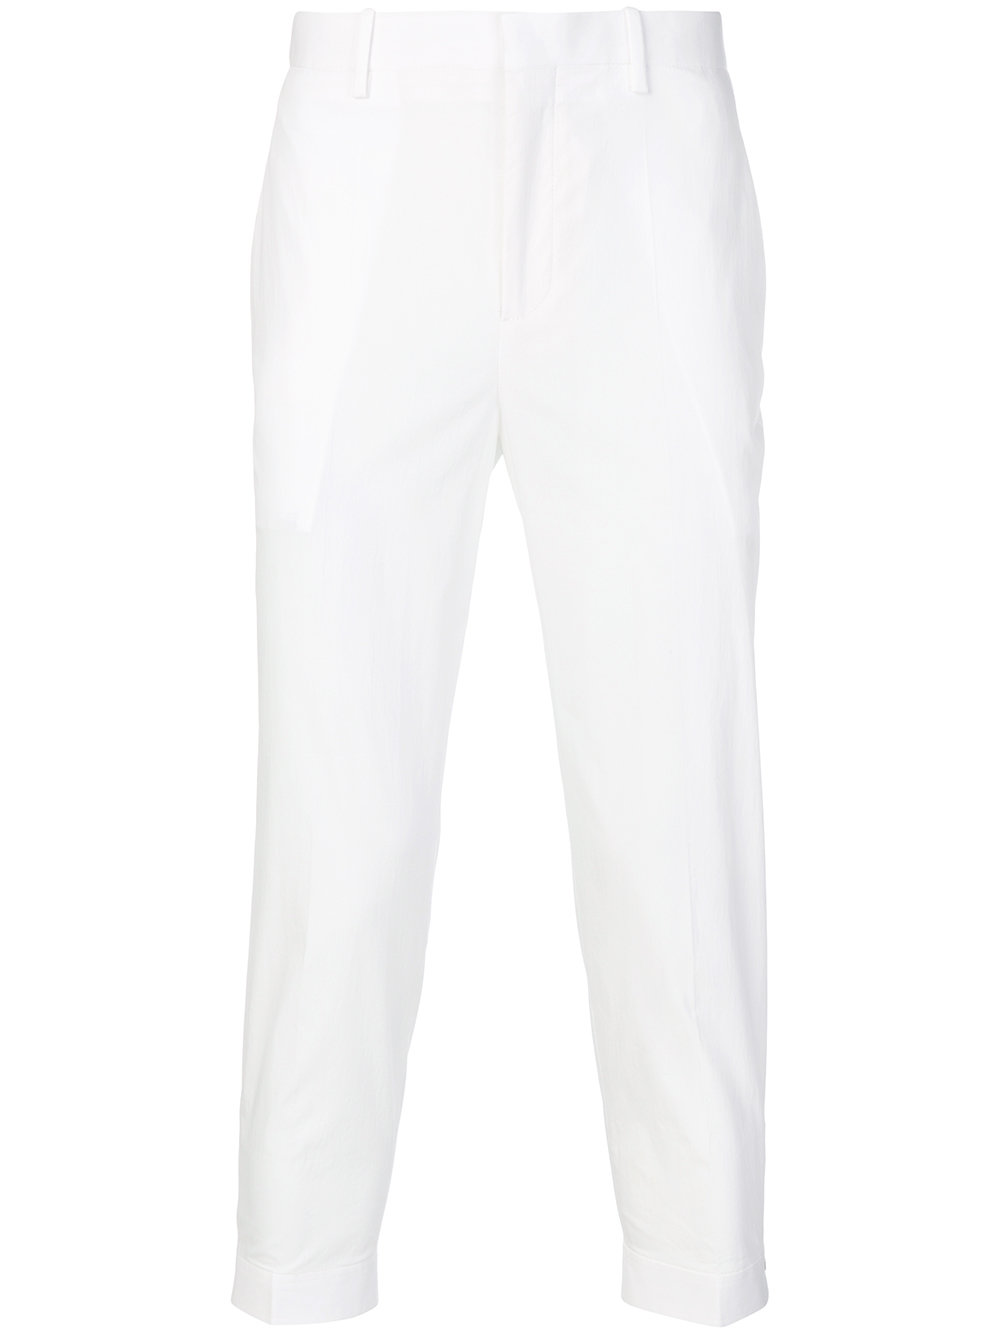 3bad0003603405 neil-barrett-tapered-cropped-trousers-white-farfetch-com-photo.jpg 1531547446